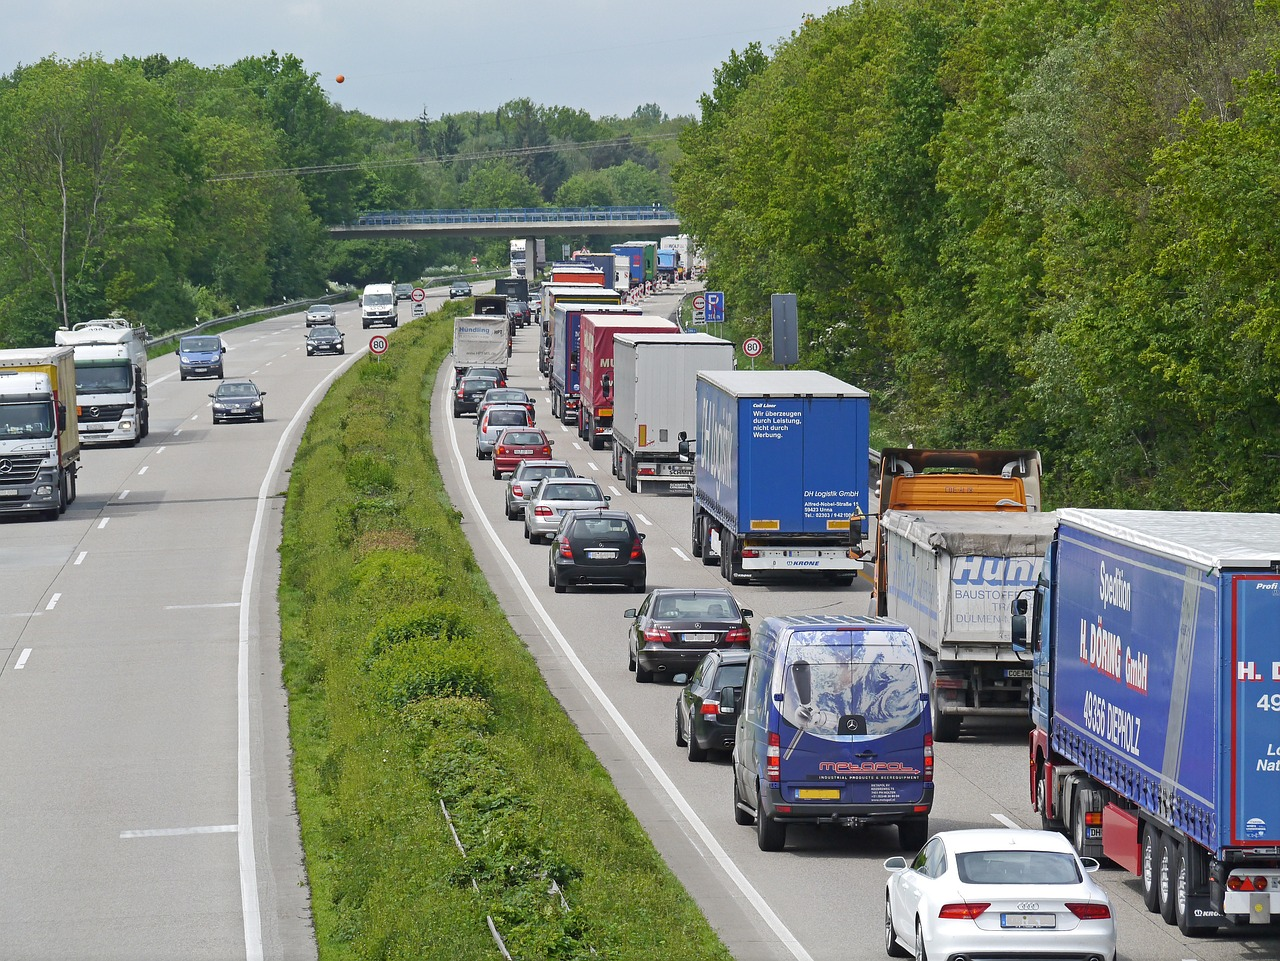 Extension of tolls in Germany will heavily drain the carriers' funds